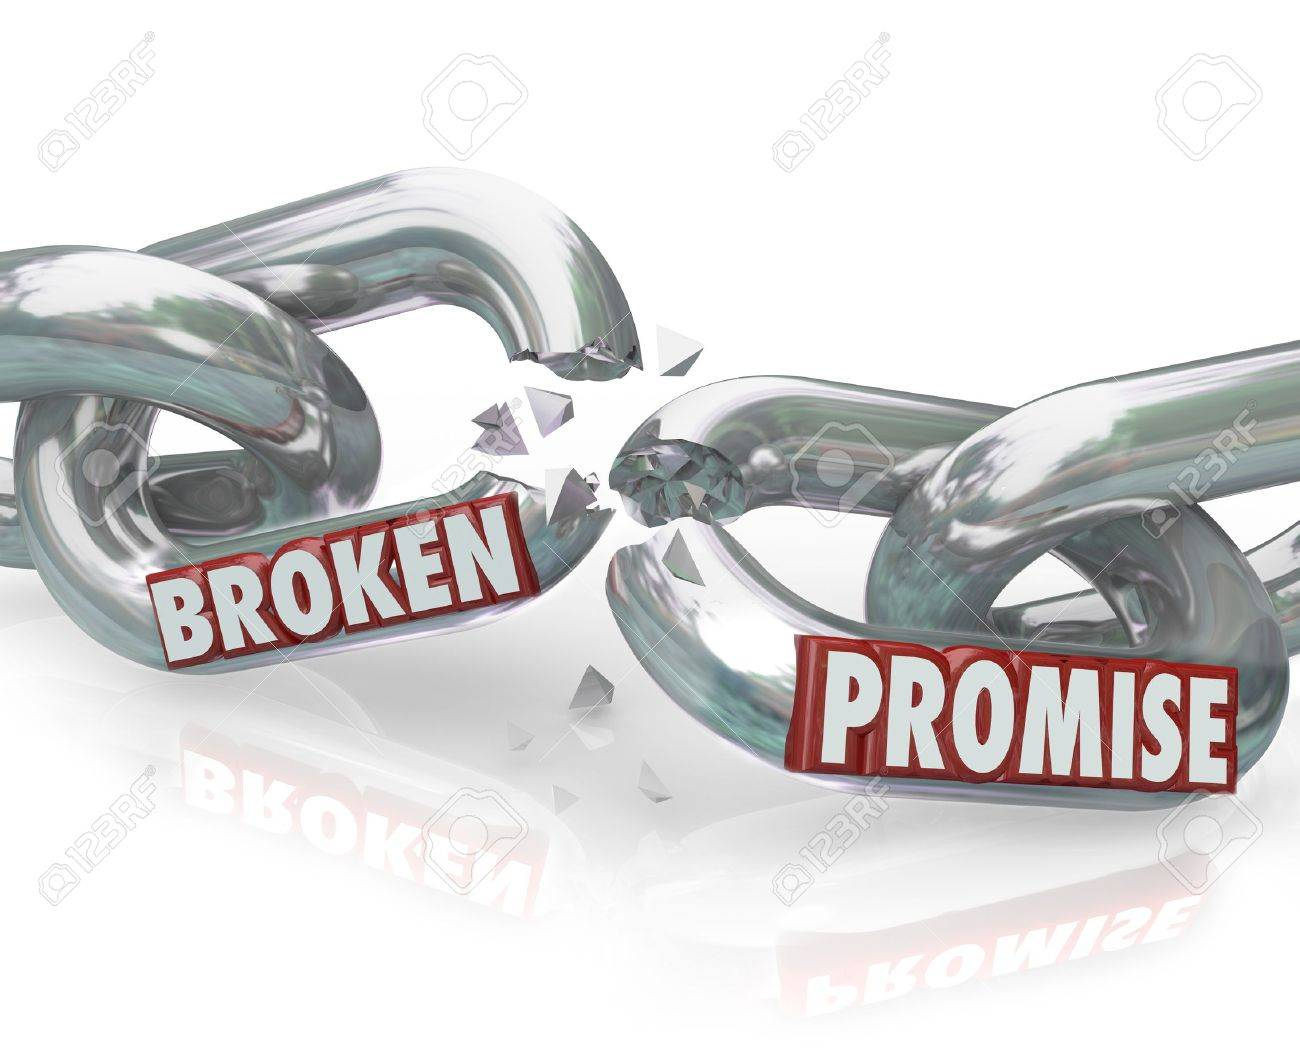 The words Broken Promise on chain links breaking apart to symbolize unfaithfulness, violation, mistrust, lies, deceit, deception and wronging a partner, spouse or significant other Stock Photo - 16683451